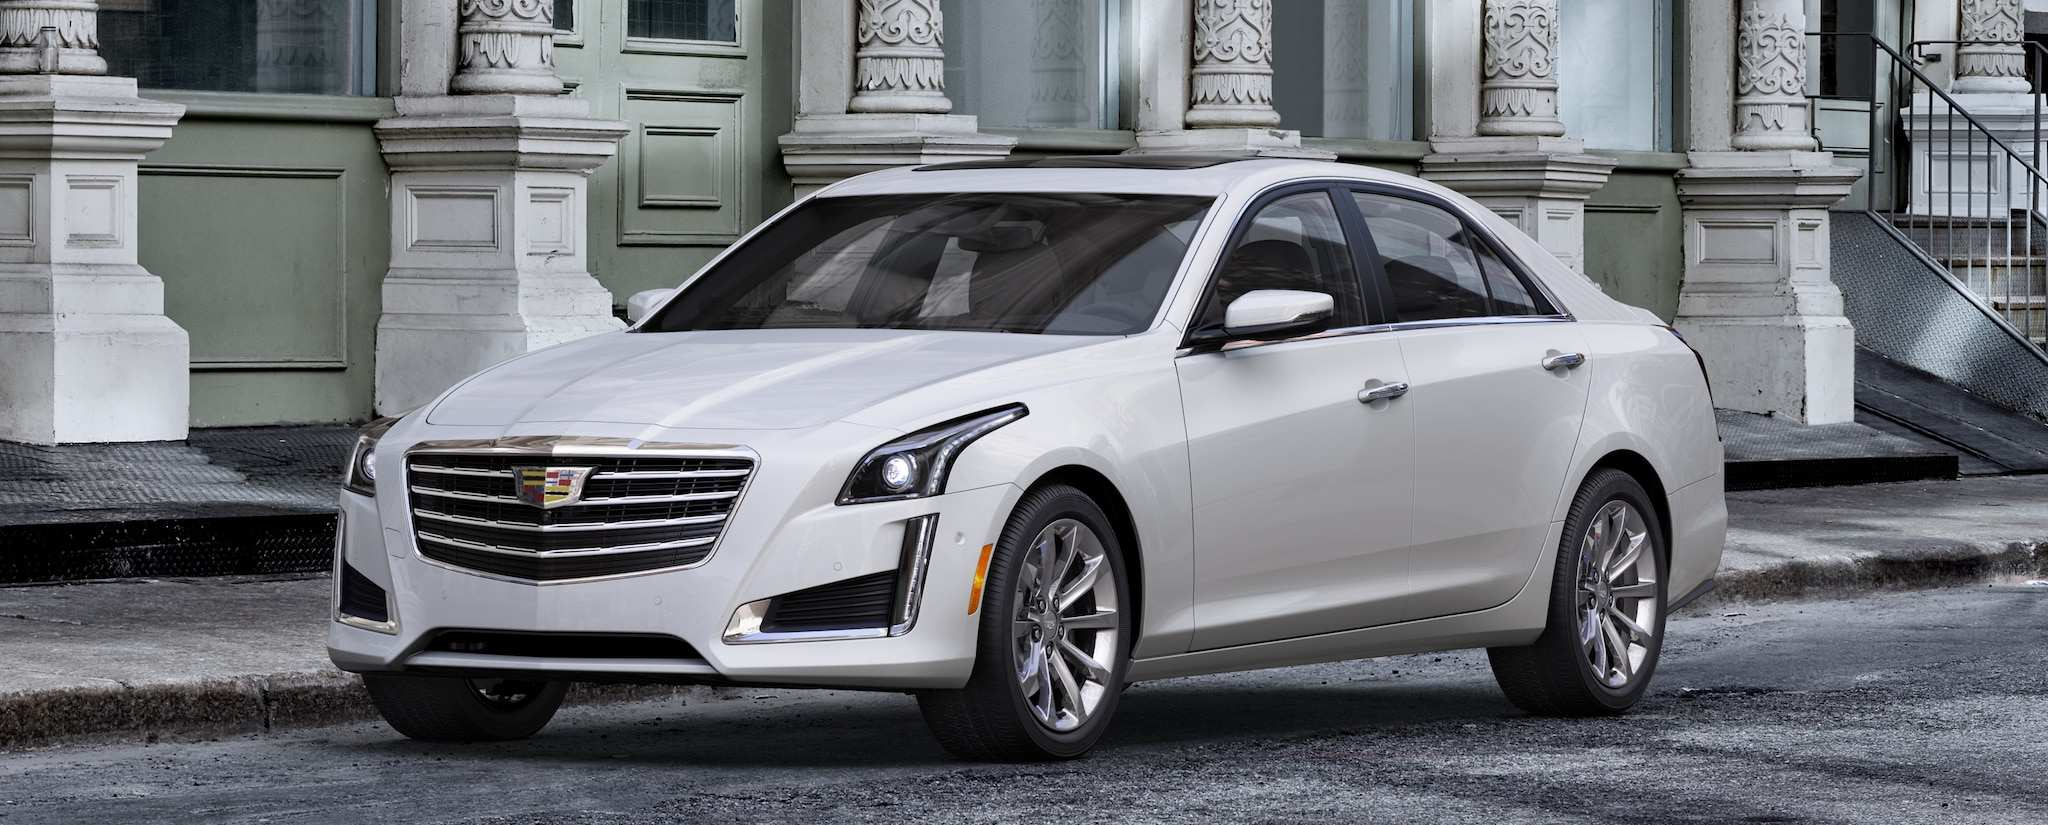 46 Best 2019 Cadillac Dts Picture